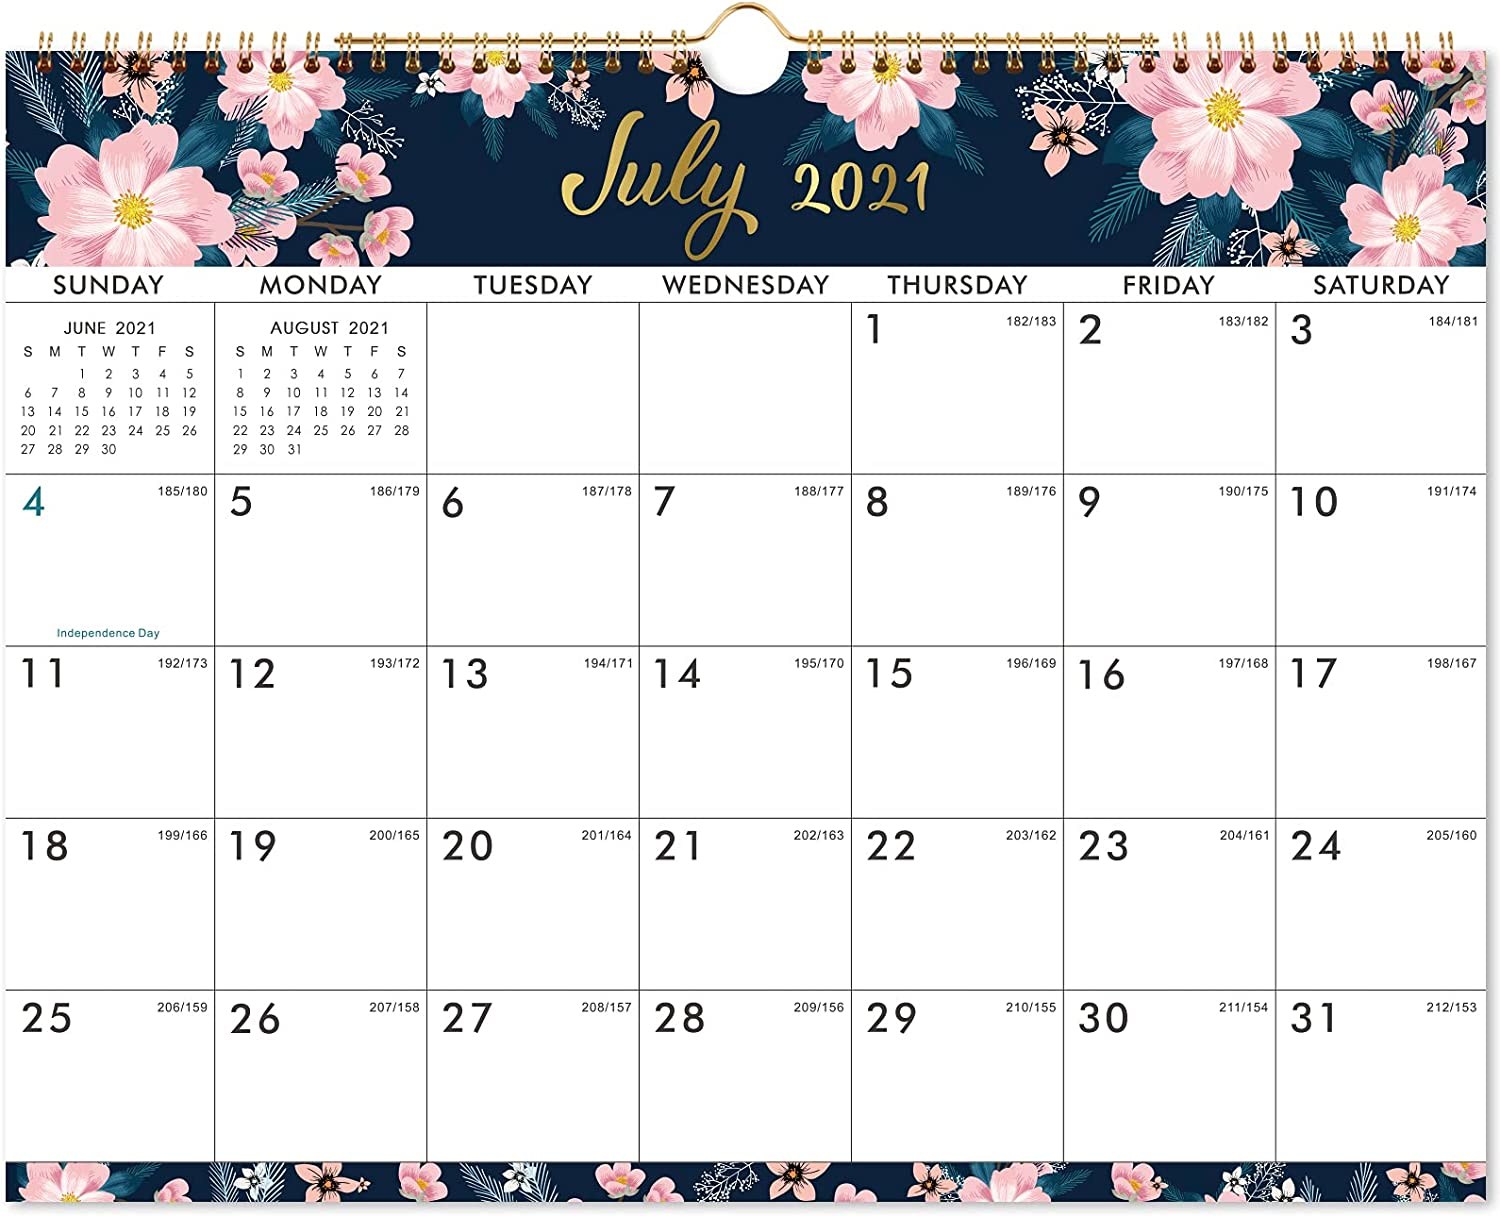 """2021-2022 Calendar - Wall Calendar with Colorful Monthly Page, Jul 2021 - Dec 2022, 15"""" x 11.5"""", Twin-Wire Binding & Large Blocks, Perfect for School, Office & Home Planning"""